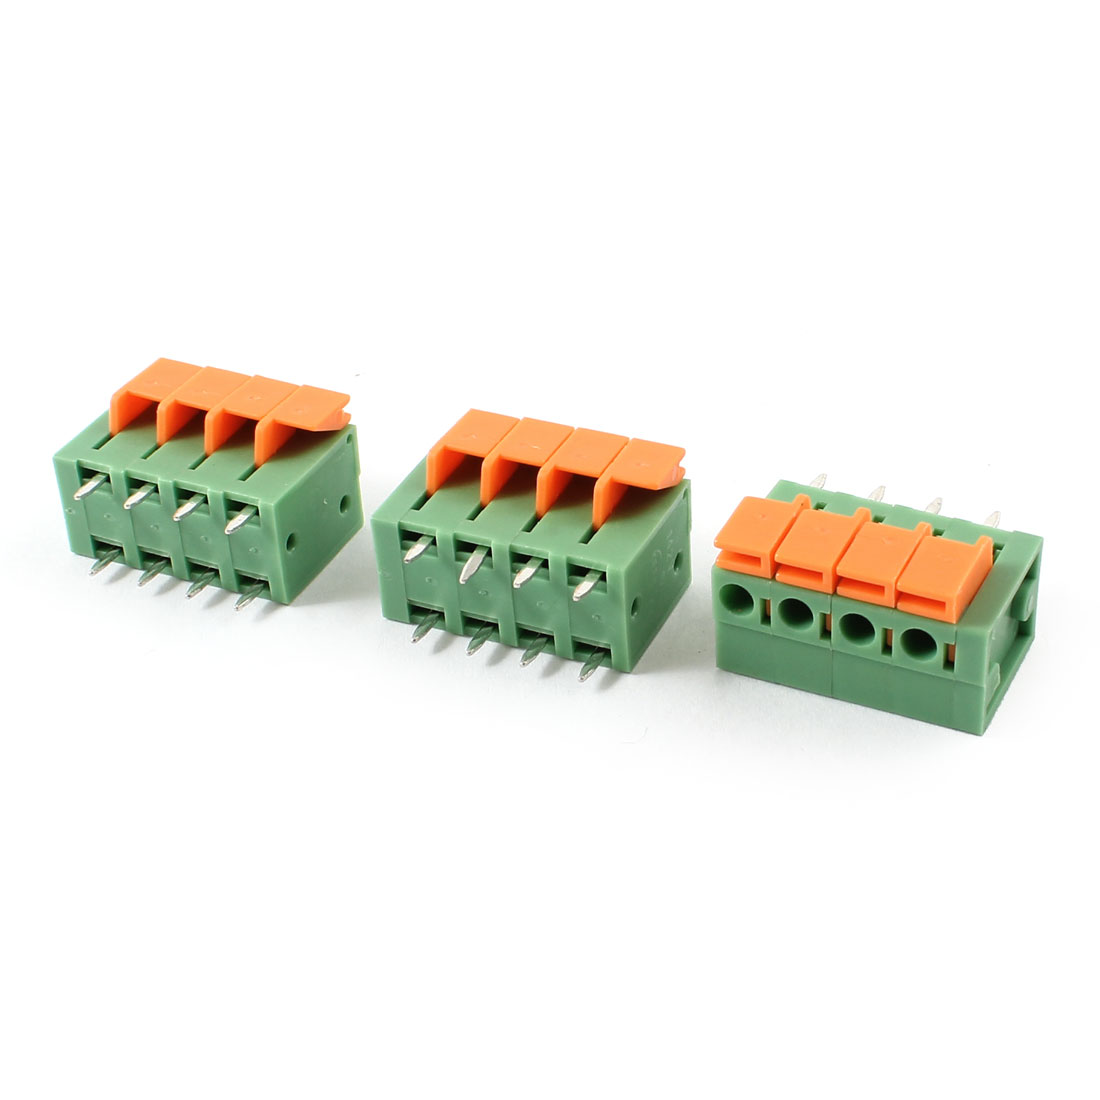 3pcs 5.08mm 4 Positions PCB Mount Screwless Spring Terminal Blocks 142V 2A